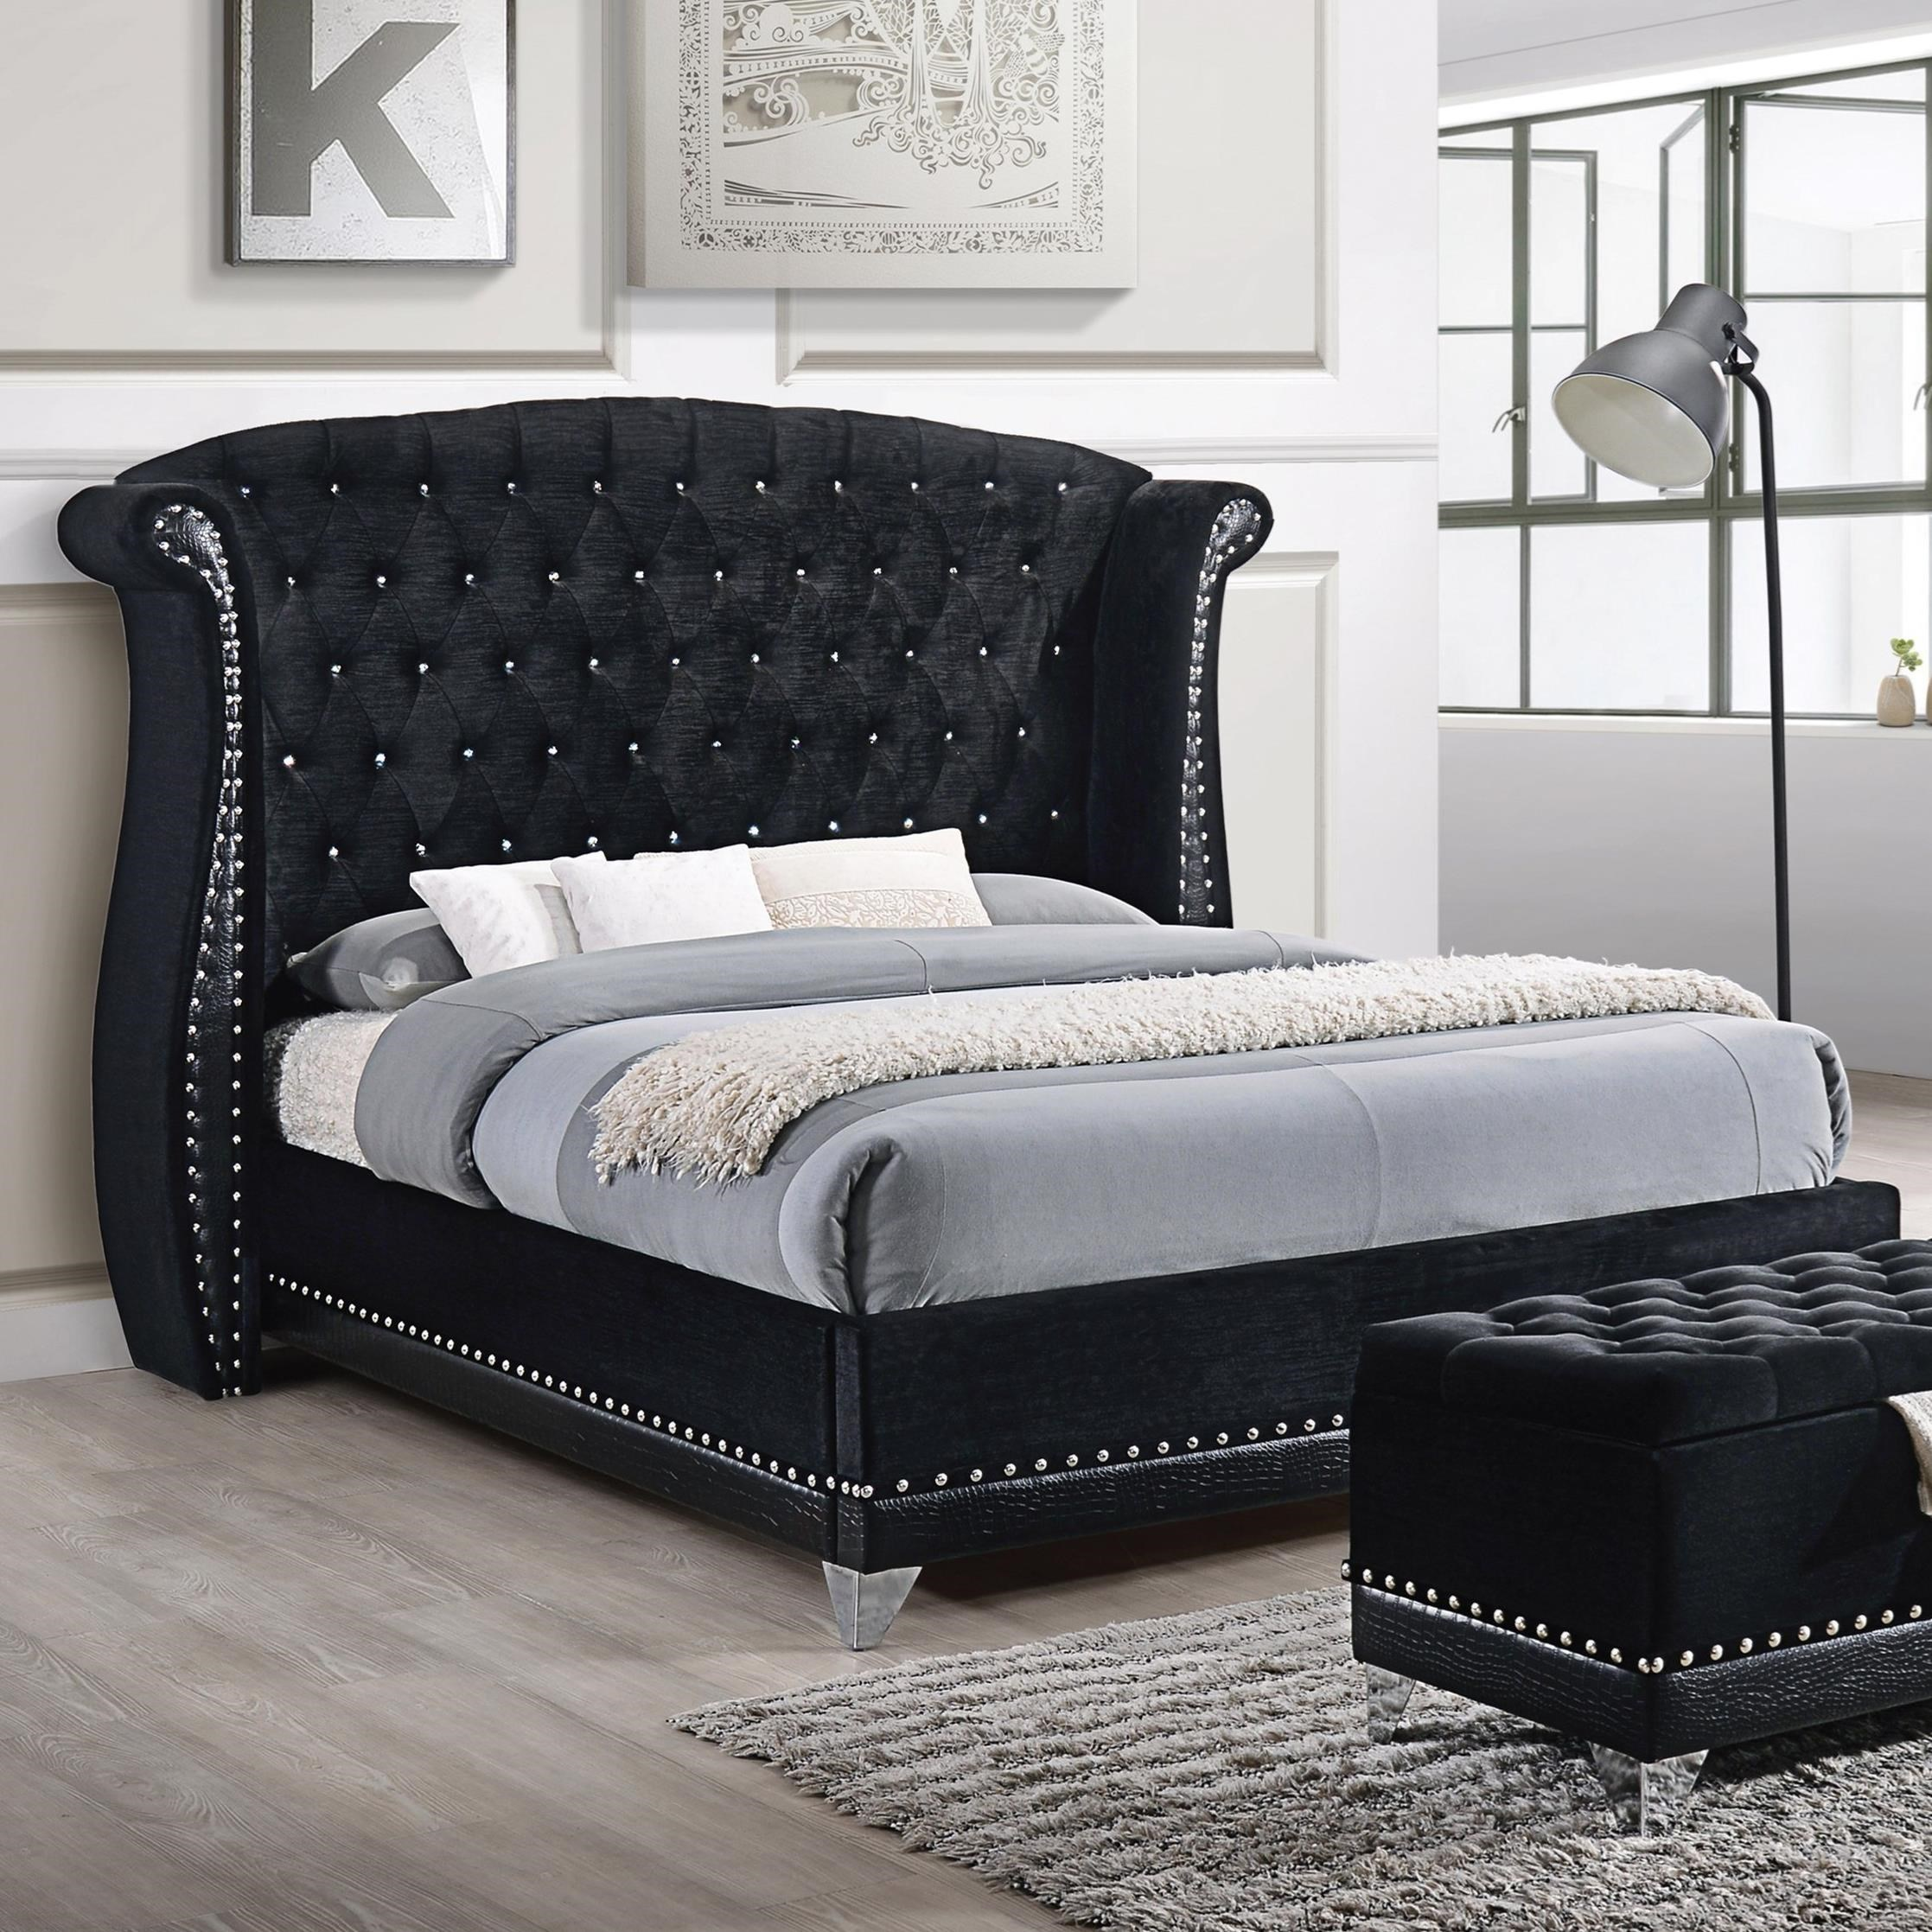 for buy pad queencalifornia california of mattress concept impressive queenss full size queen picture